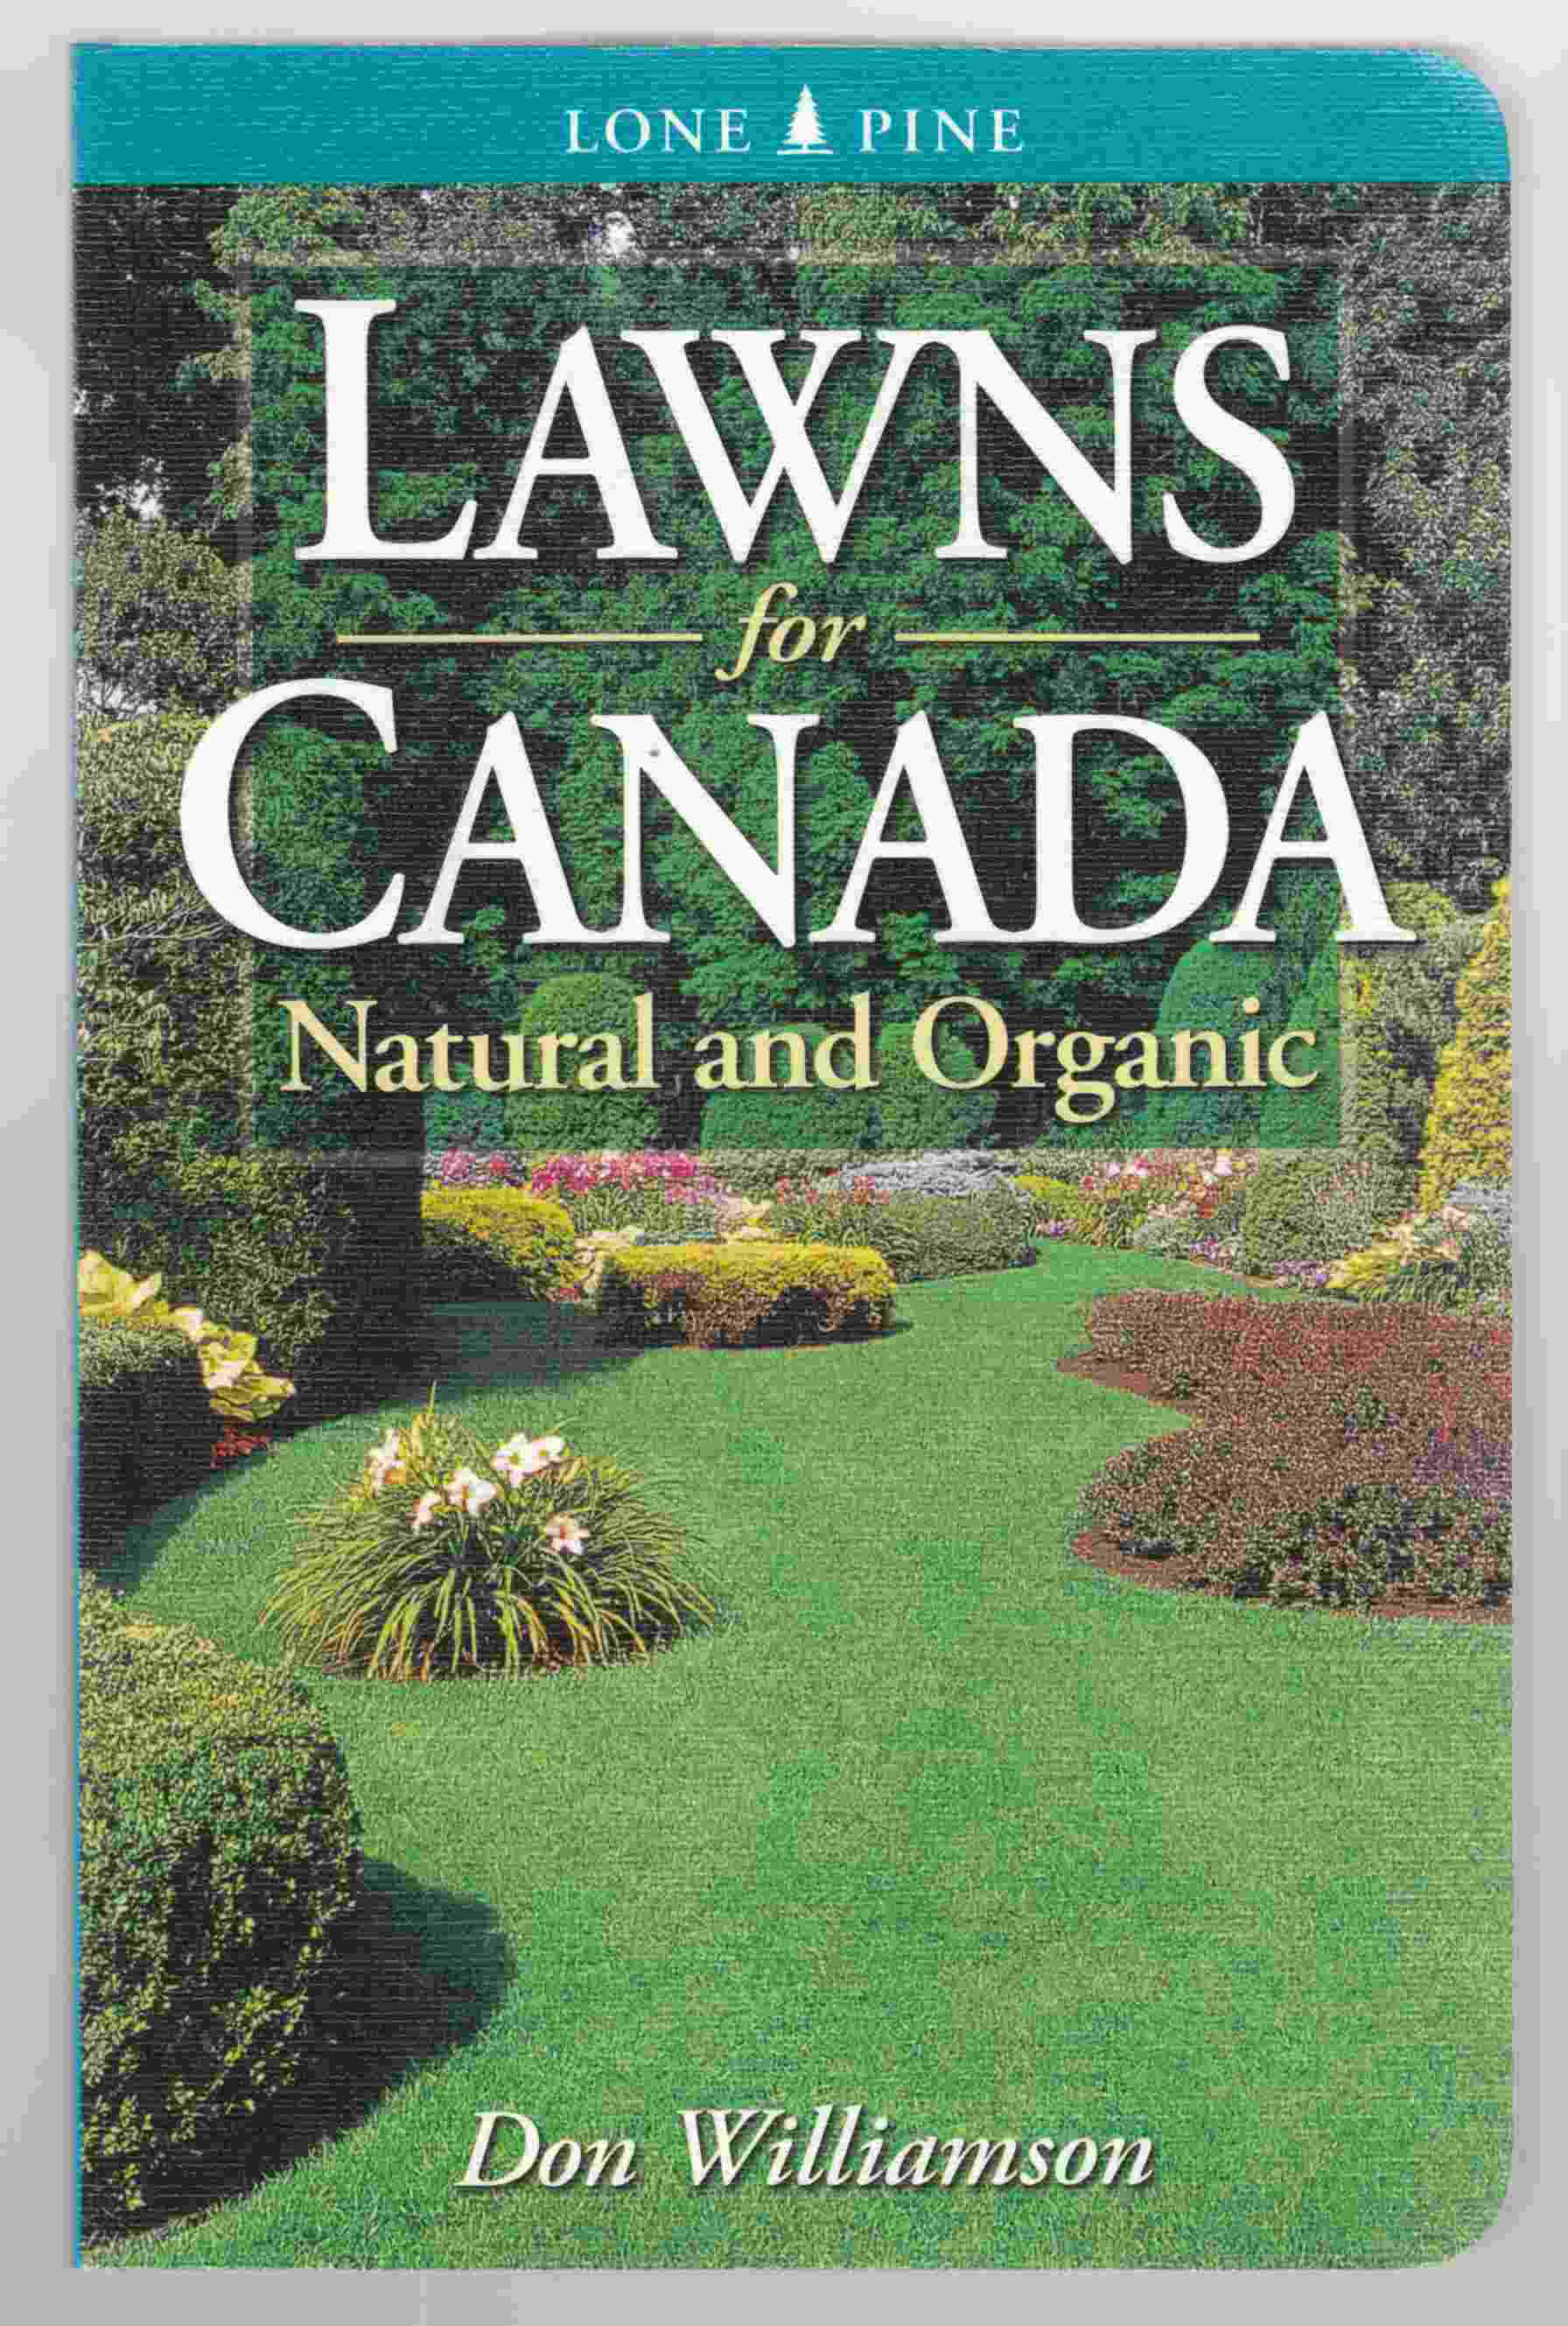 Image for Lawns for Canada Natural and Organic